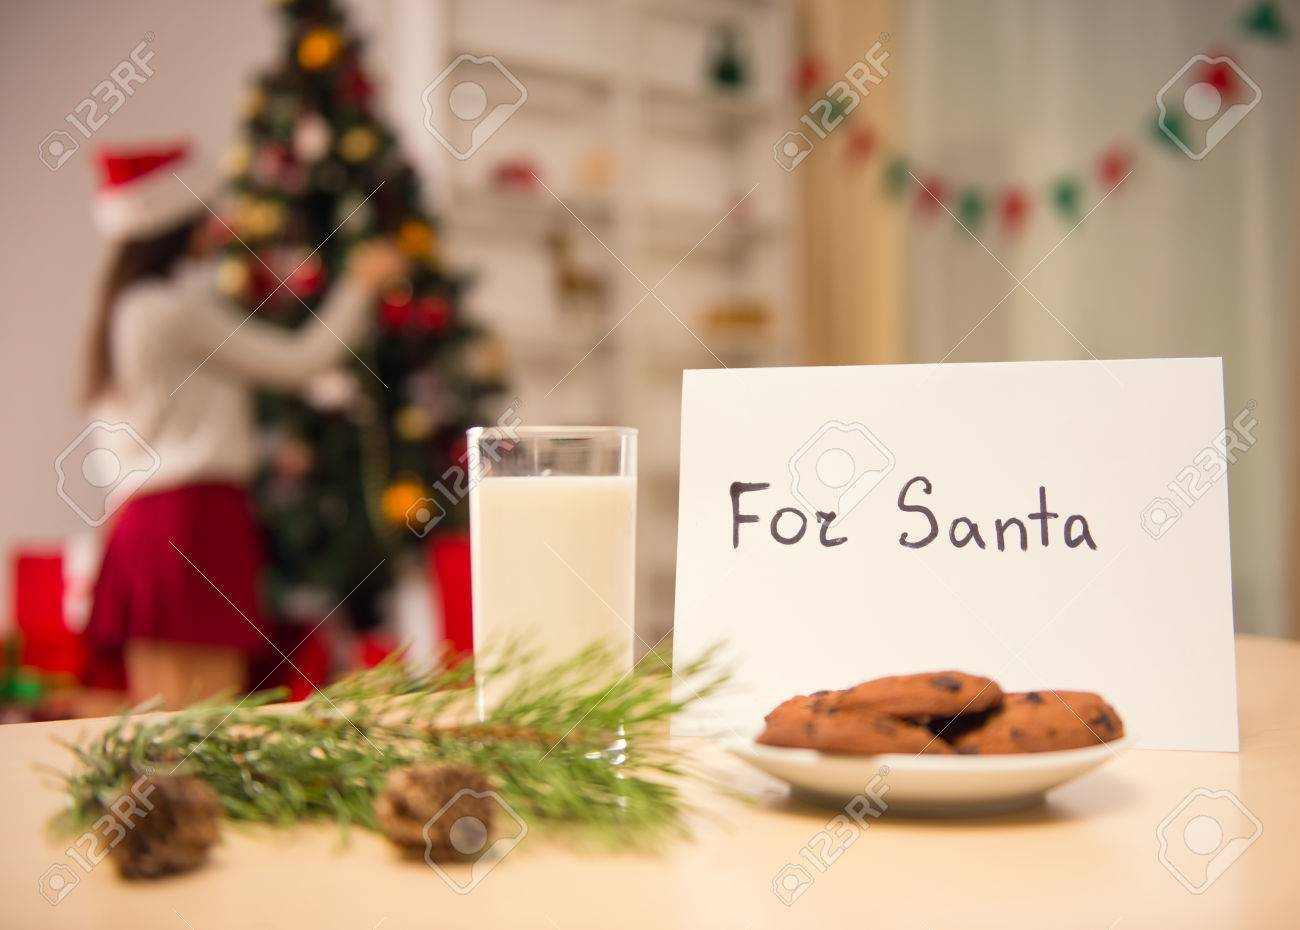 Milk And Cookies For Santa On The Table Celebrating Christmas